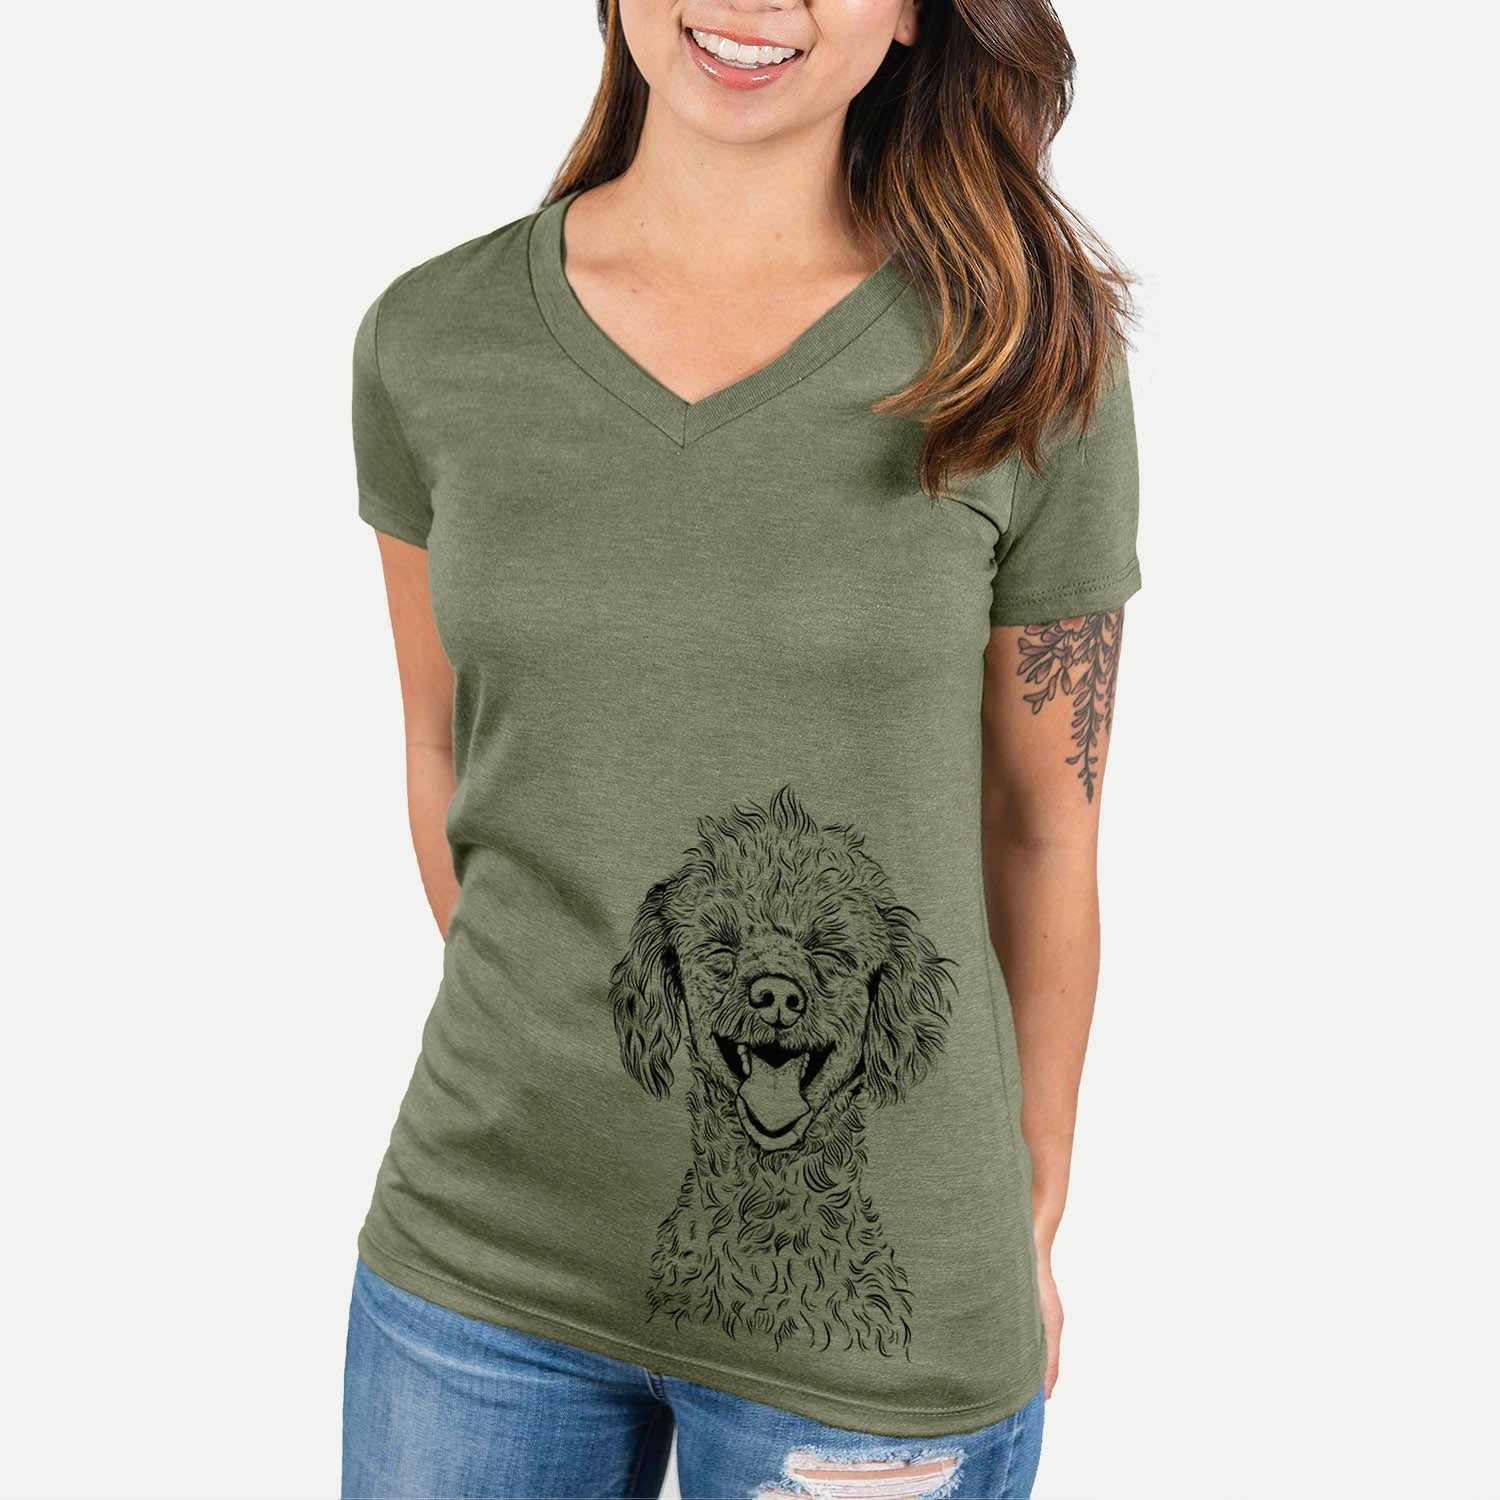 Rusty the Toy Poodle - Women's Modern Fit V-neck Shirt